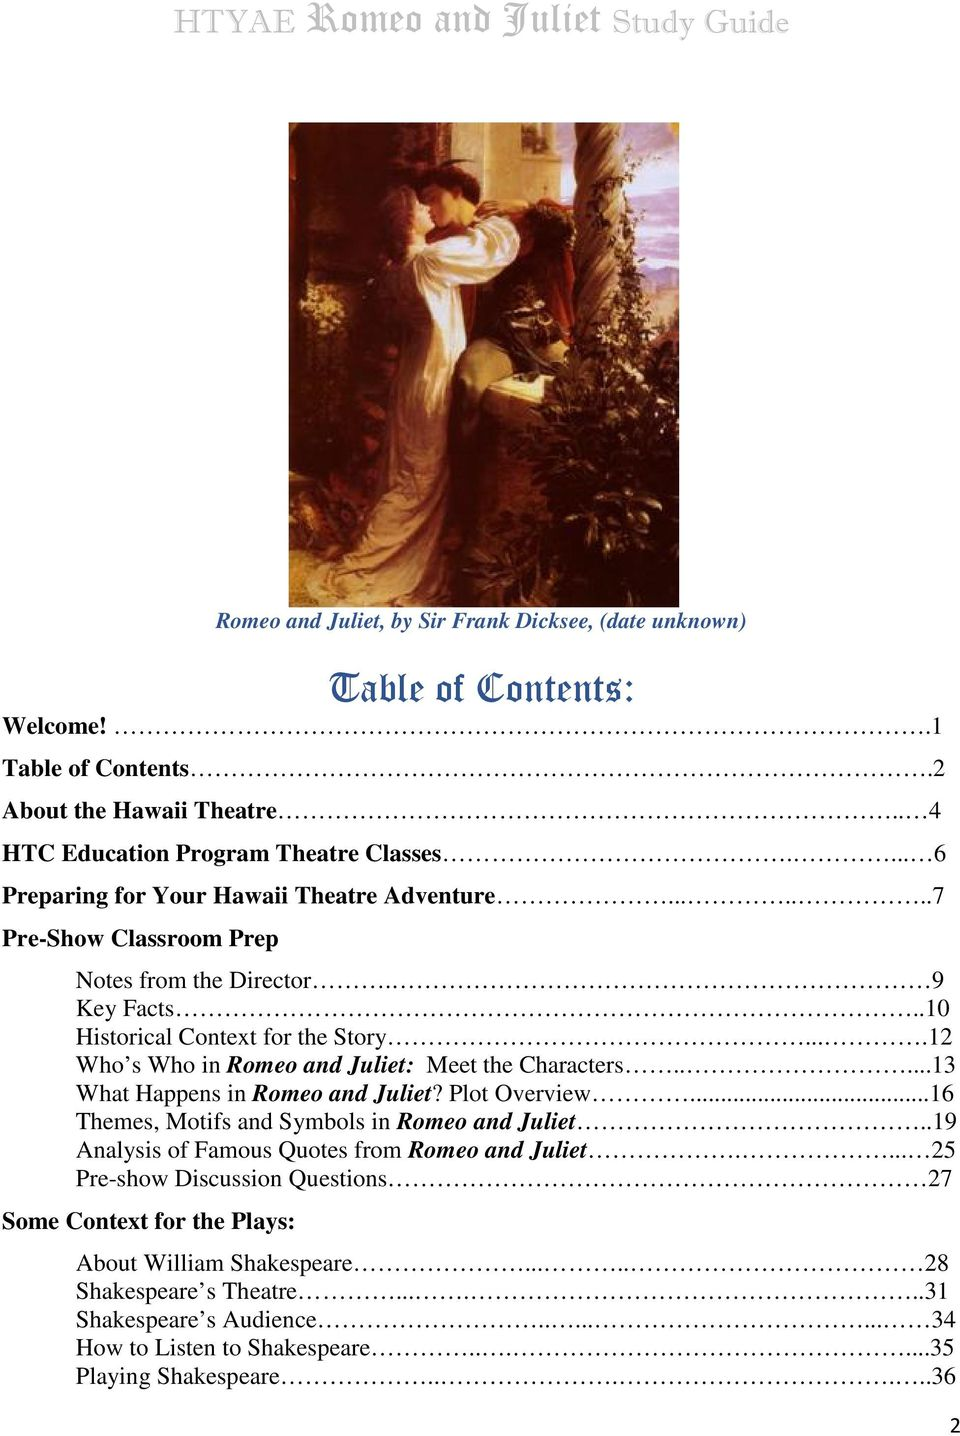 juliet romeo statement thesis There are no thesis statements in romeo and juliet because it is a fictional play thesis statements belong in essays shakespeare doesn't write them you do if you&#039re looking for a thesis statement about those topics in.